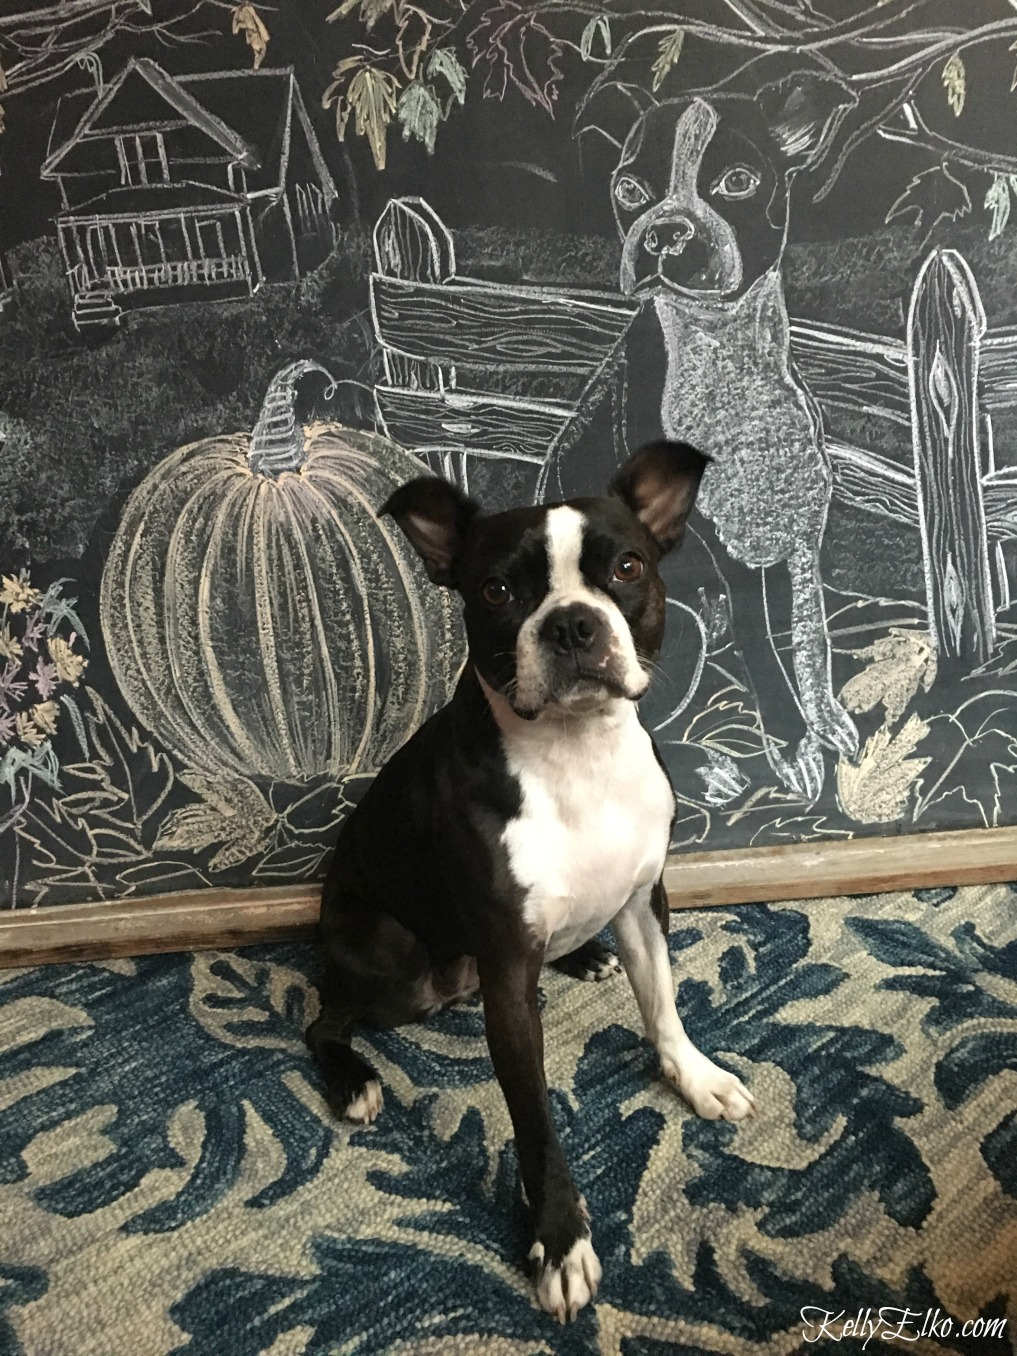 Boston Terrier chalkboard art kellyelko.com